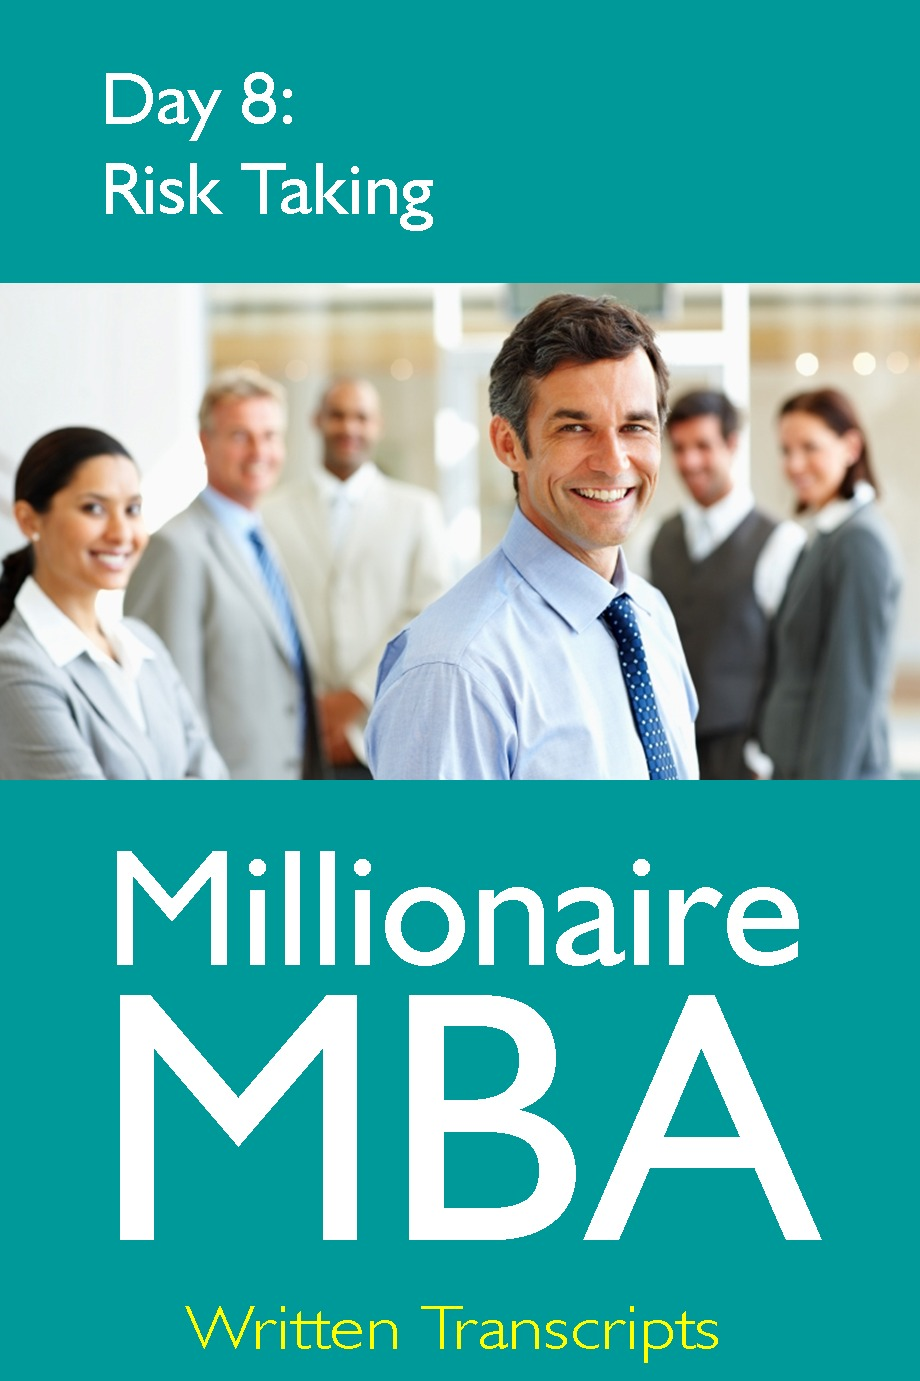 Millionaire MBA Day 8: Risk Taking